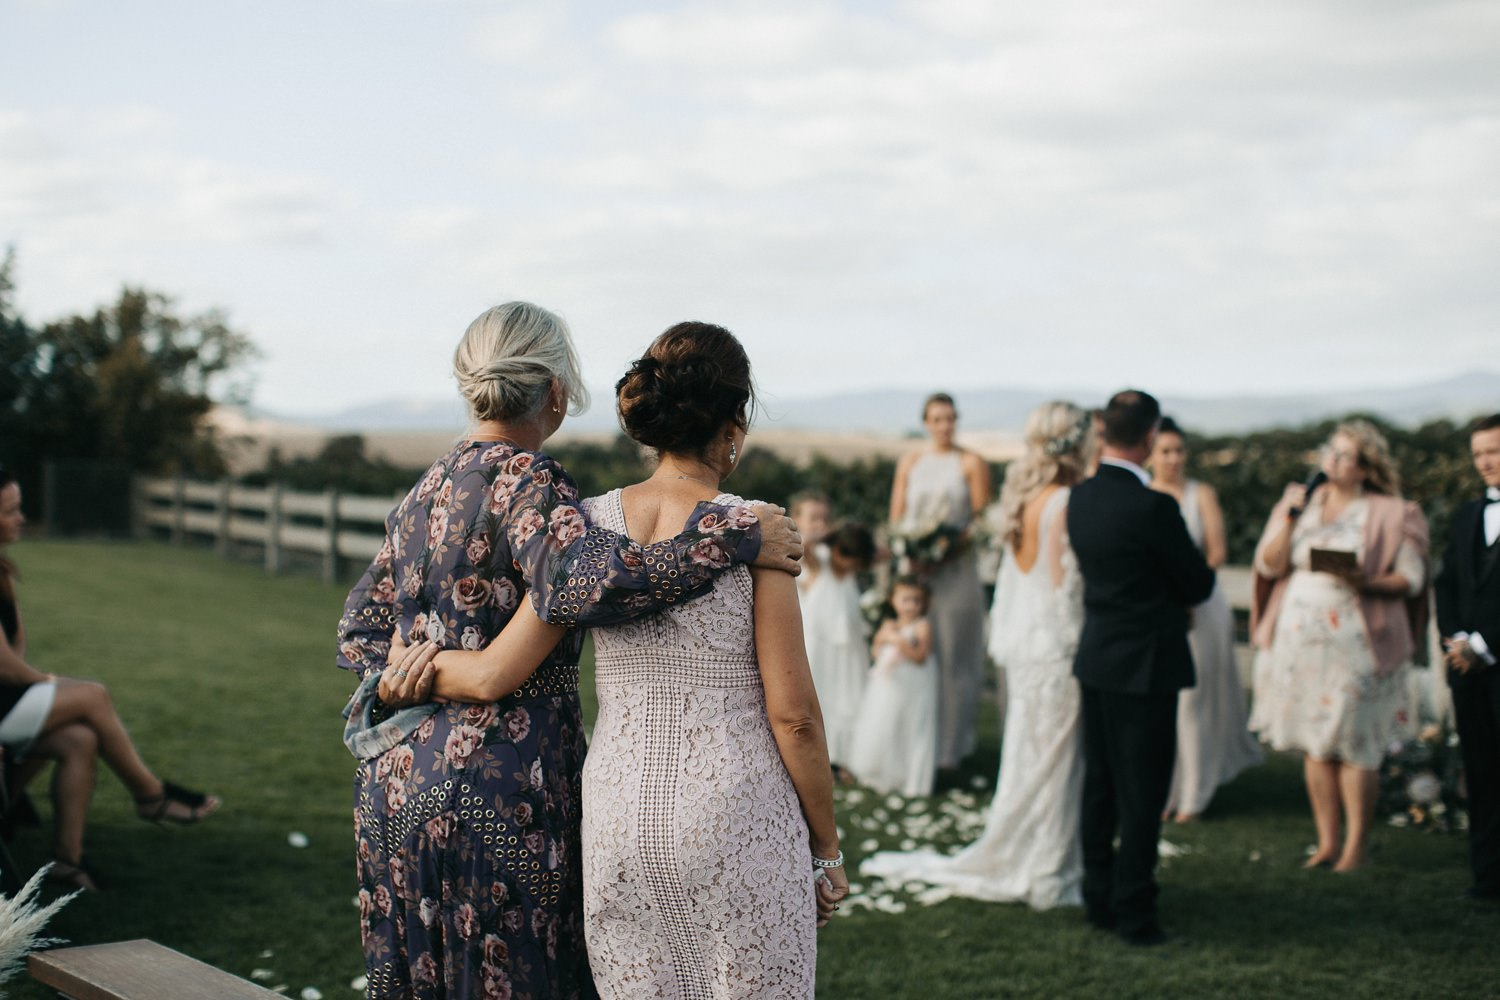 zonzo-estate-yarra-valley-wedding-photographer_0058.jpg